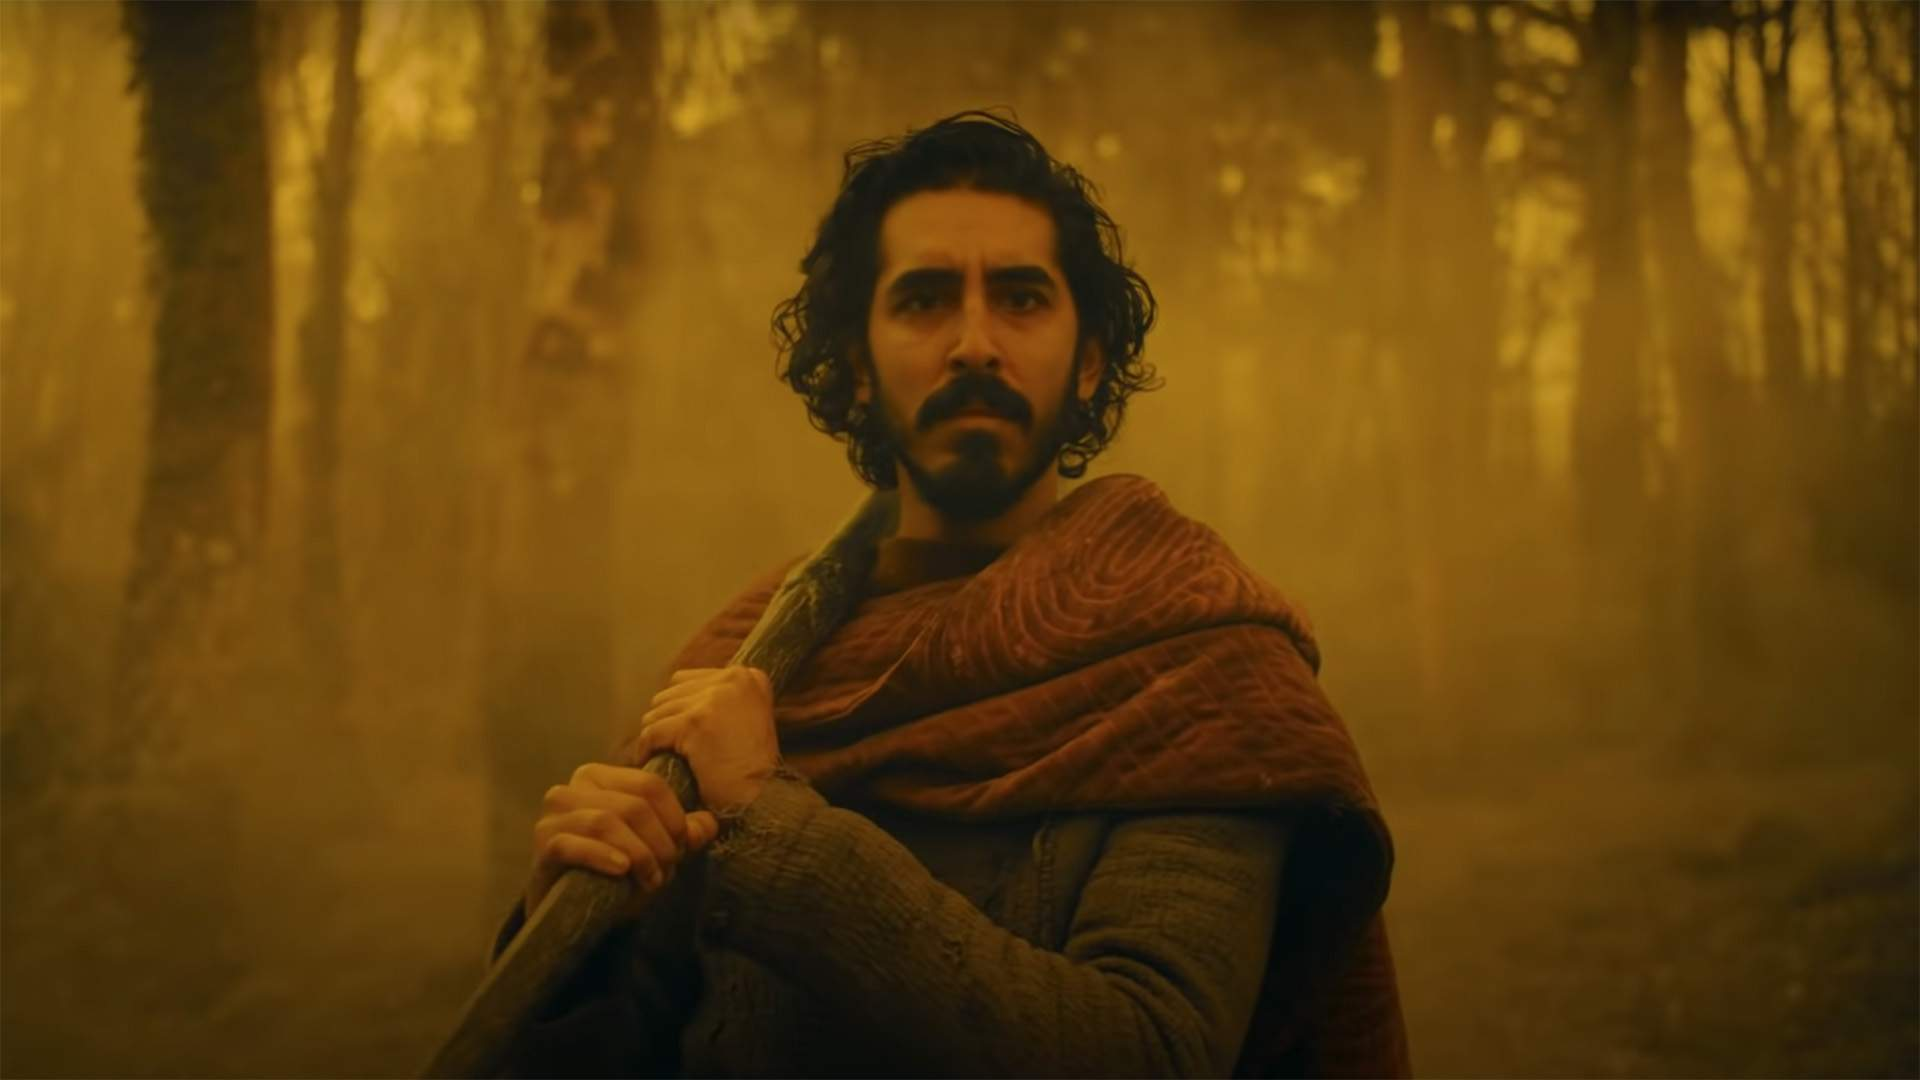 The New Trailer for 'The Green Knight' Pits an Axe-Swinging Dev Patel Against an Eerie Giant